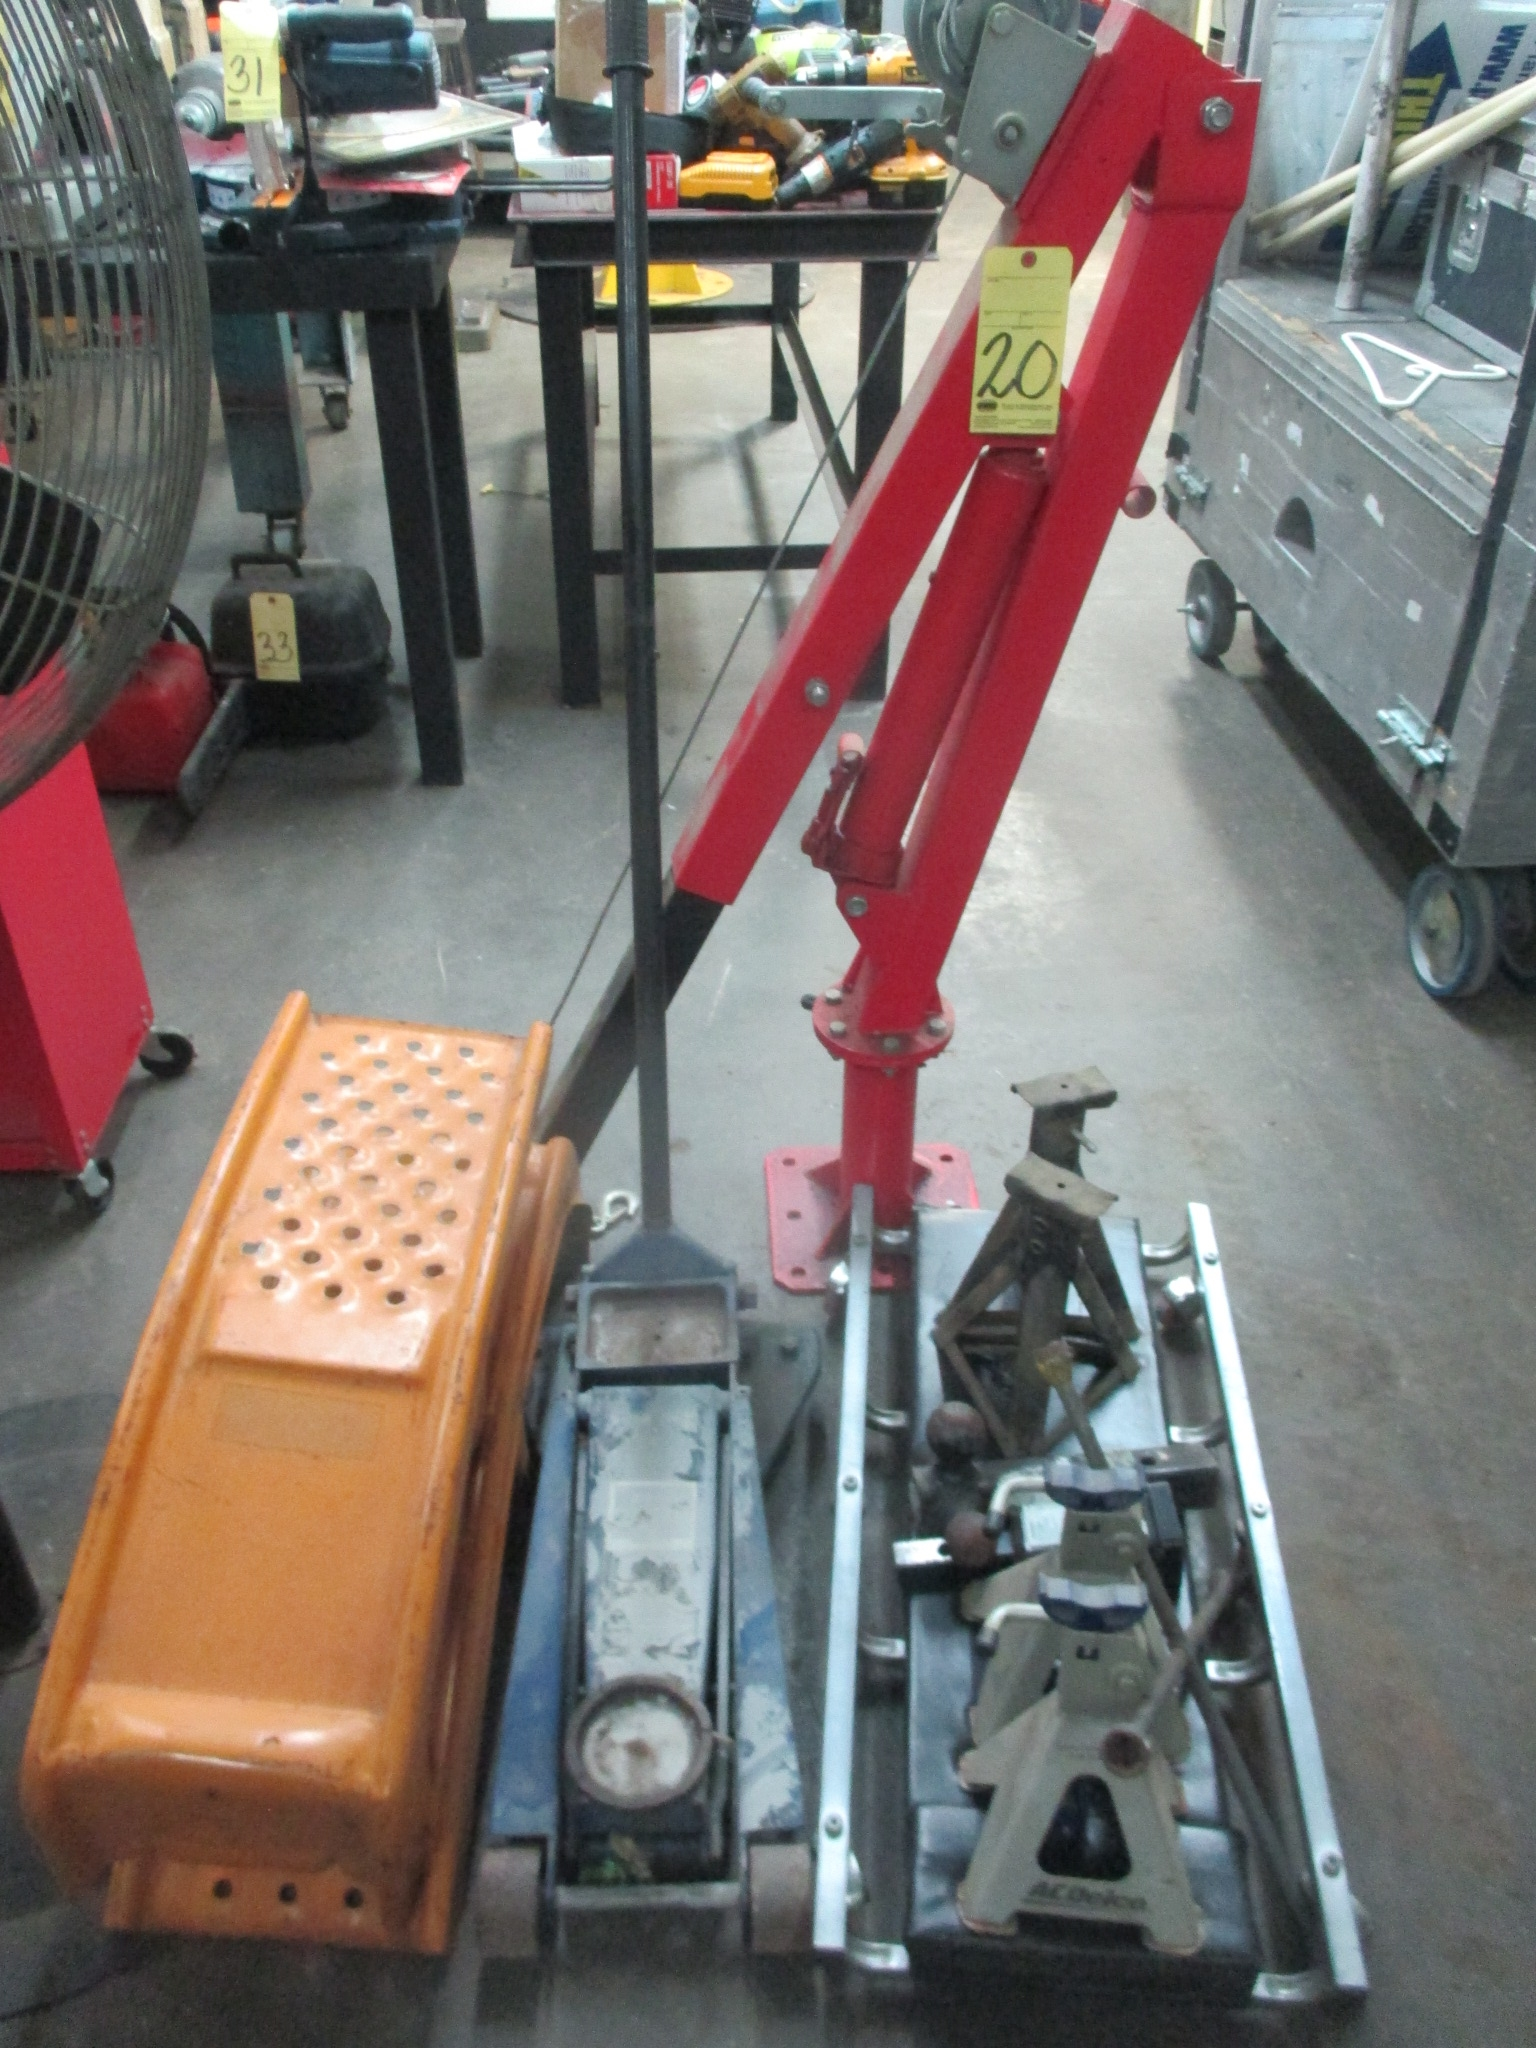 Lot 20 - LOT CONSISTING OF: truck jack, lifts, stand, creepers, truck hoist